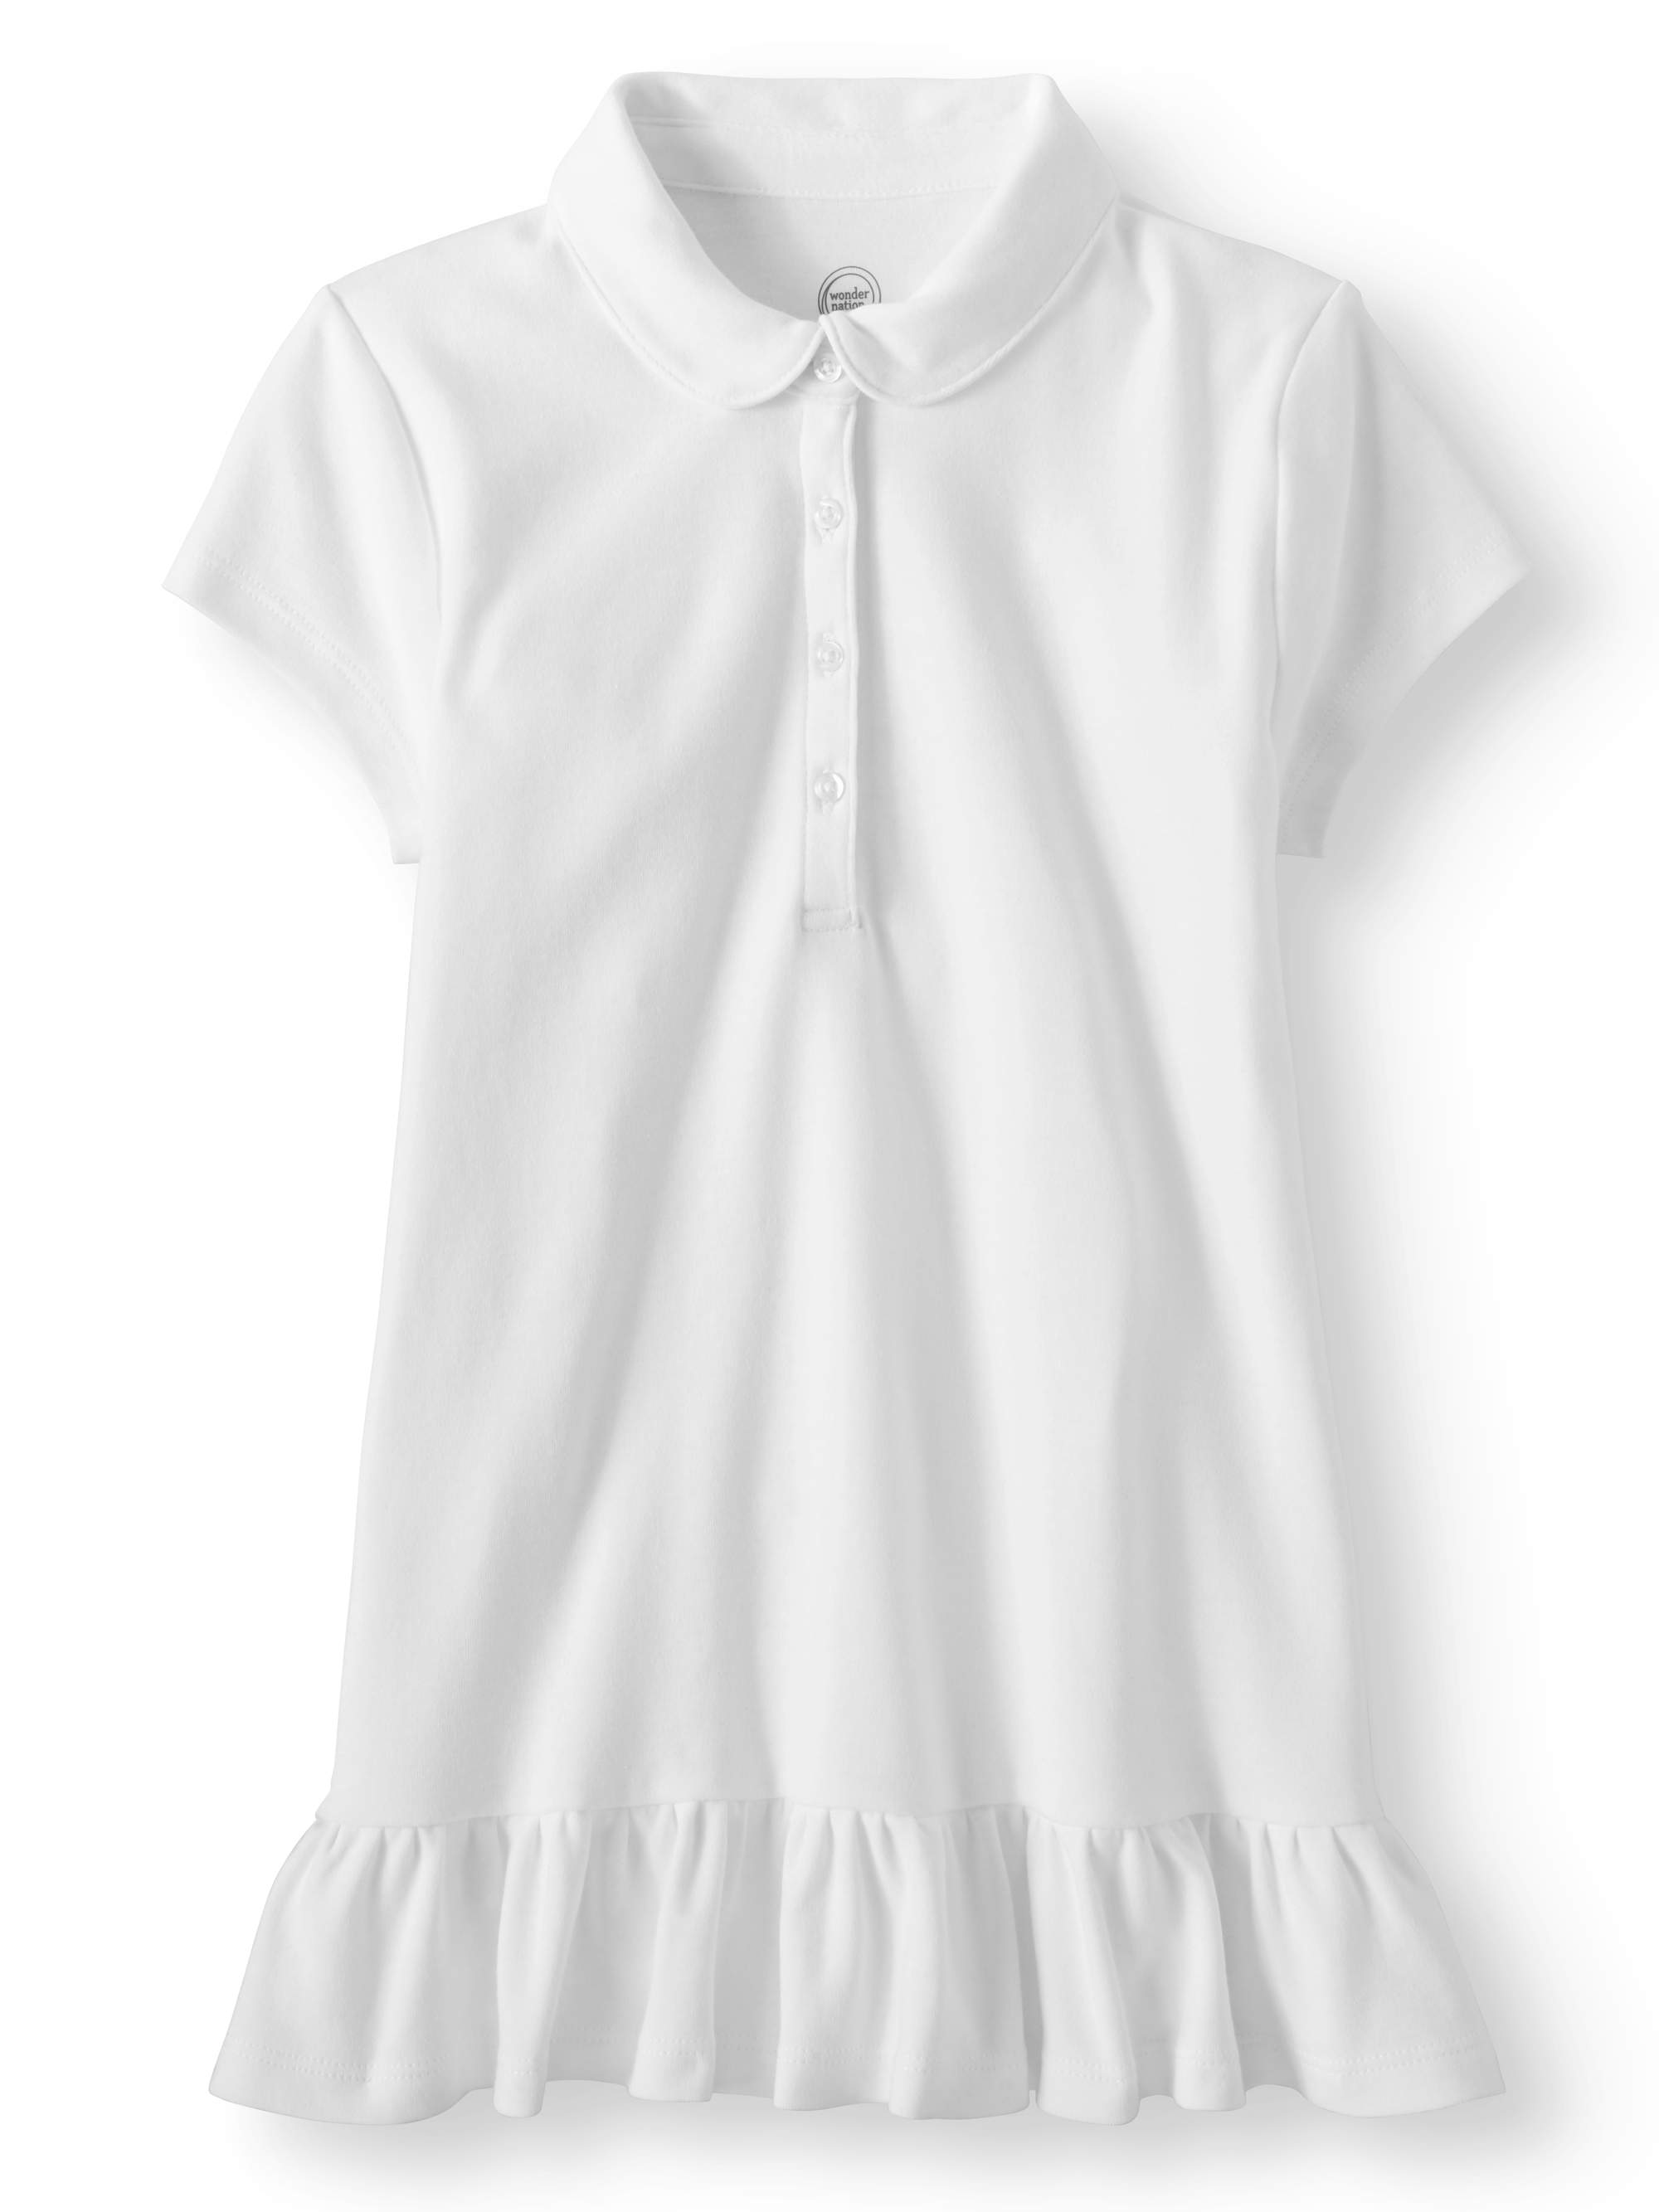 Girls School Uniform Extended Ruffle Hem Short Sleeve Polo